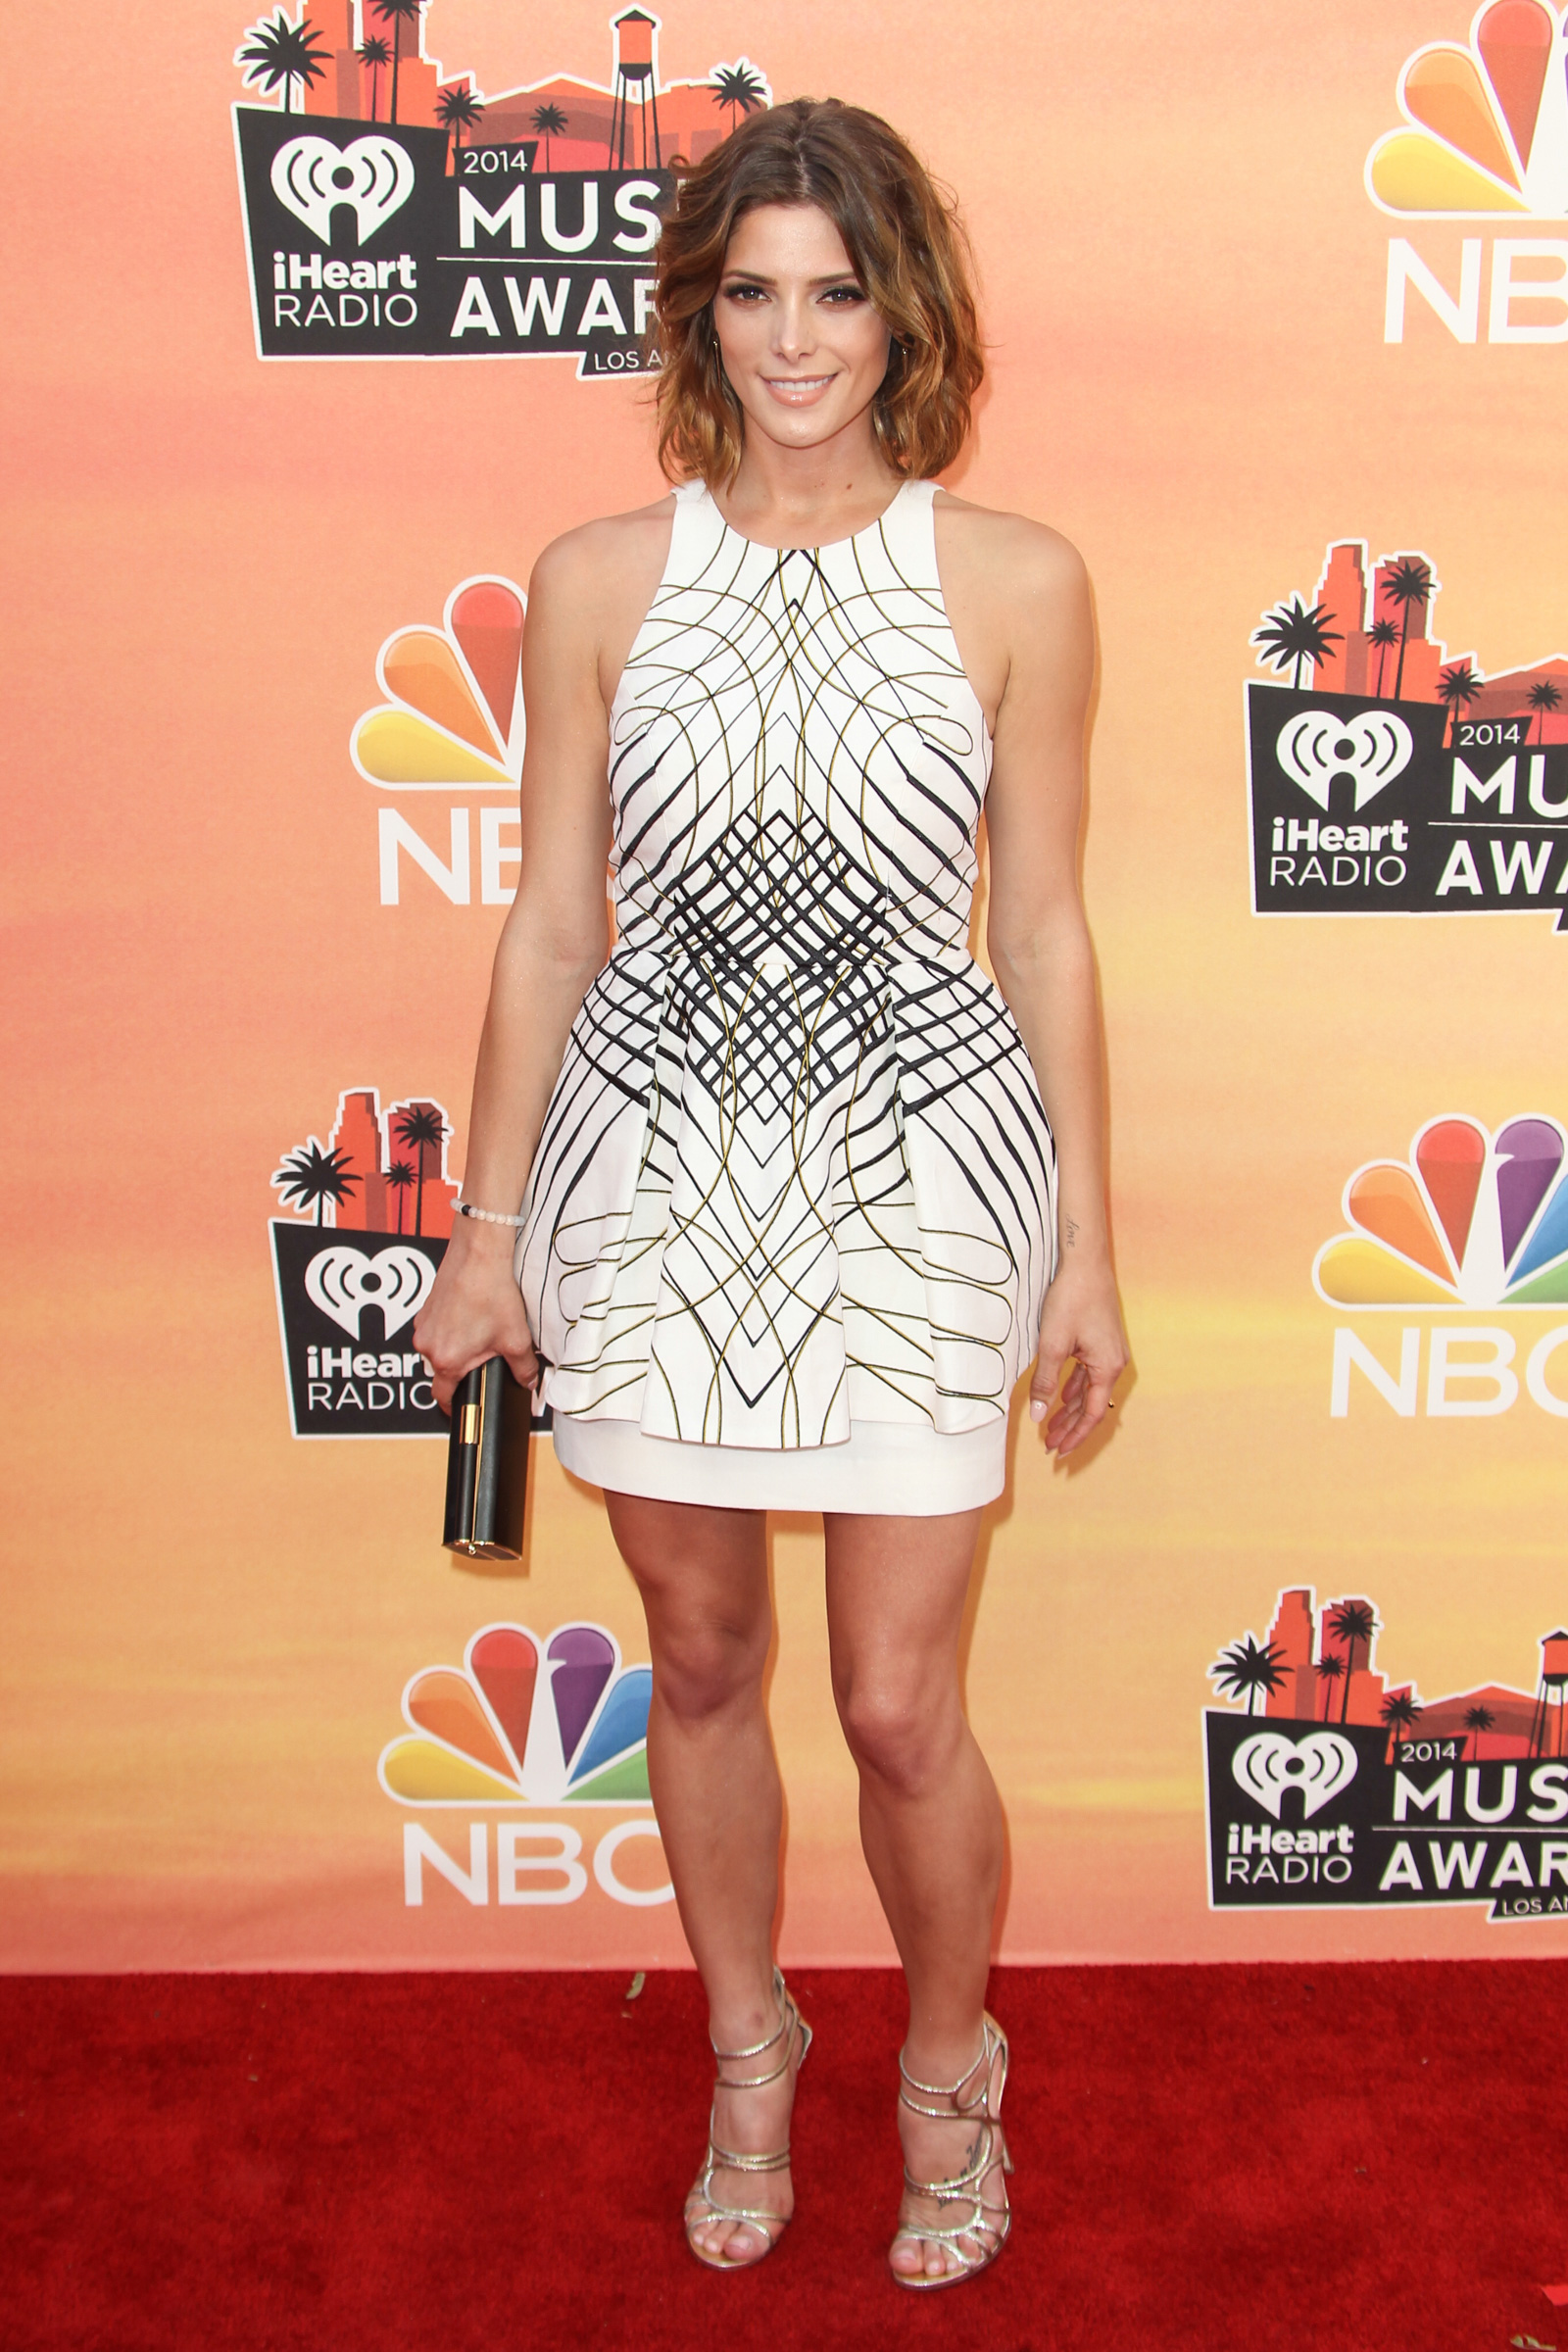 Ashley Greene at the 2014 iHeartRadio Music Awards